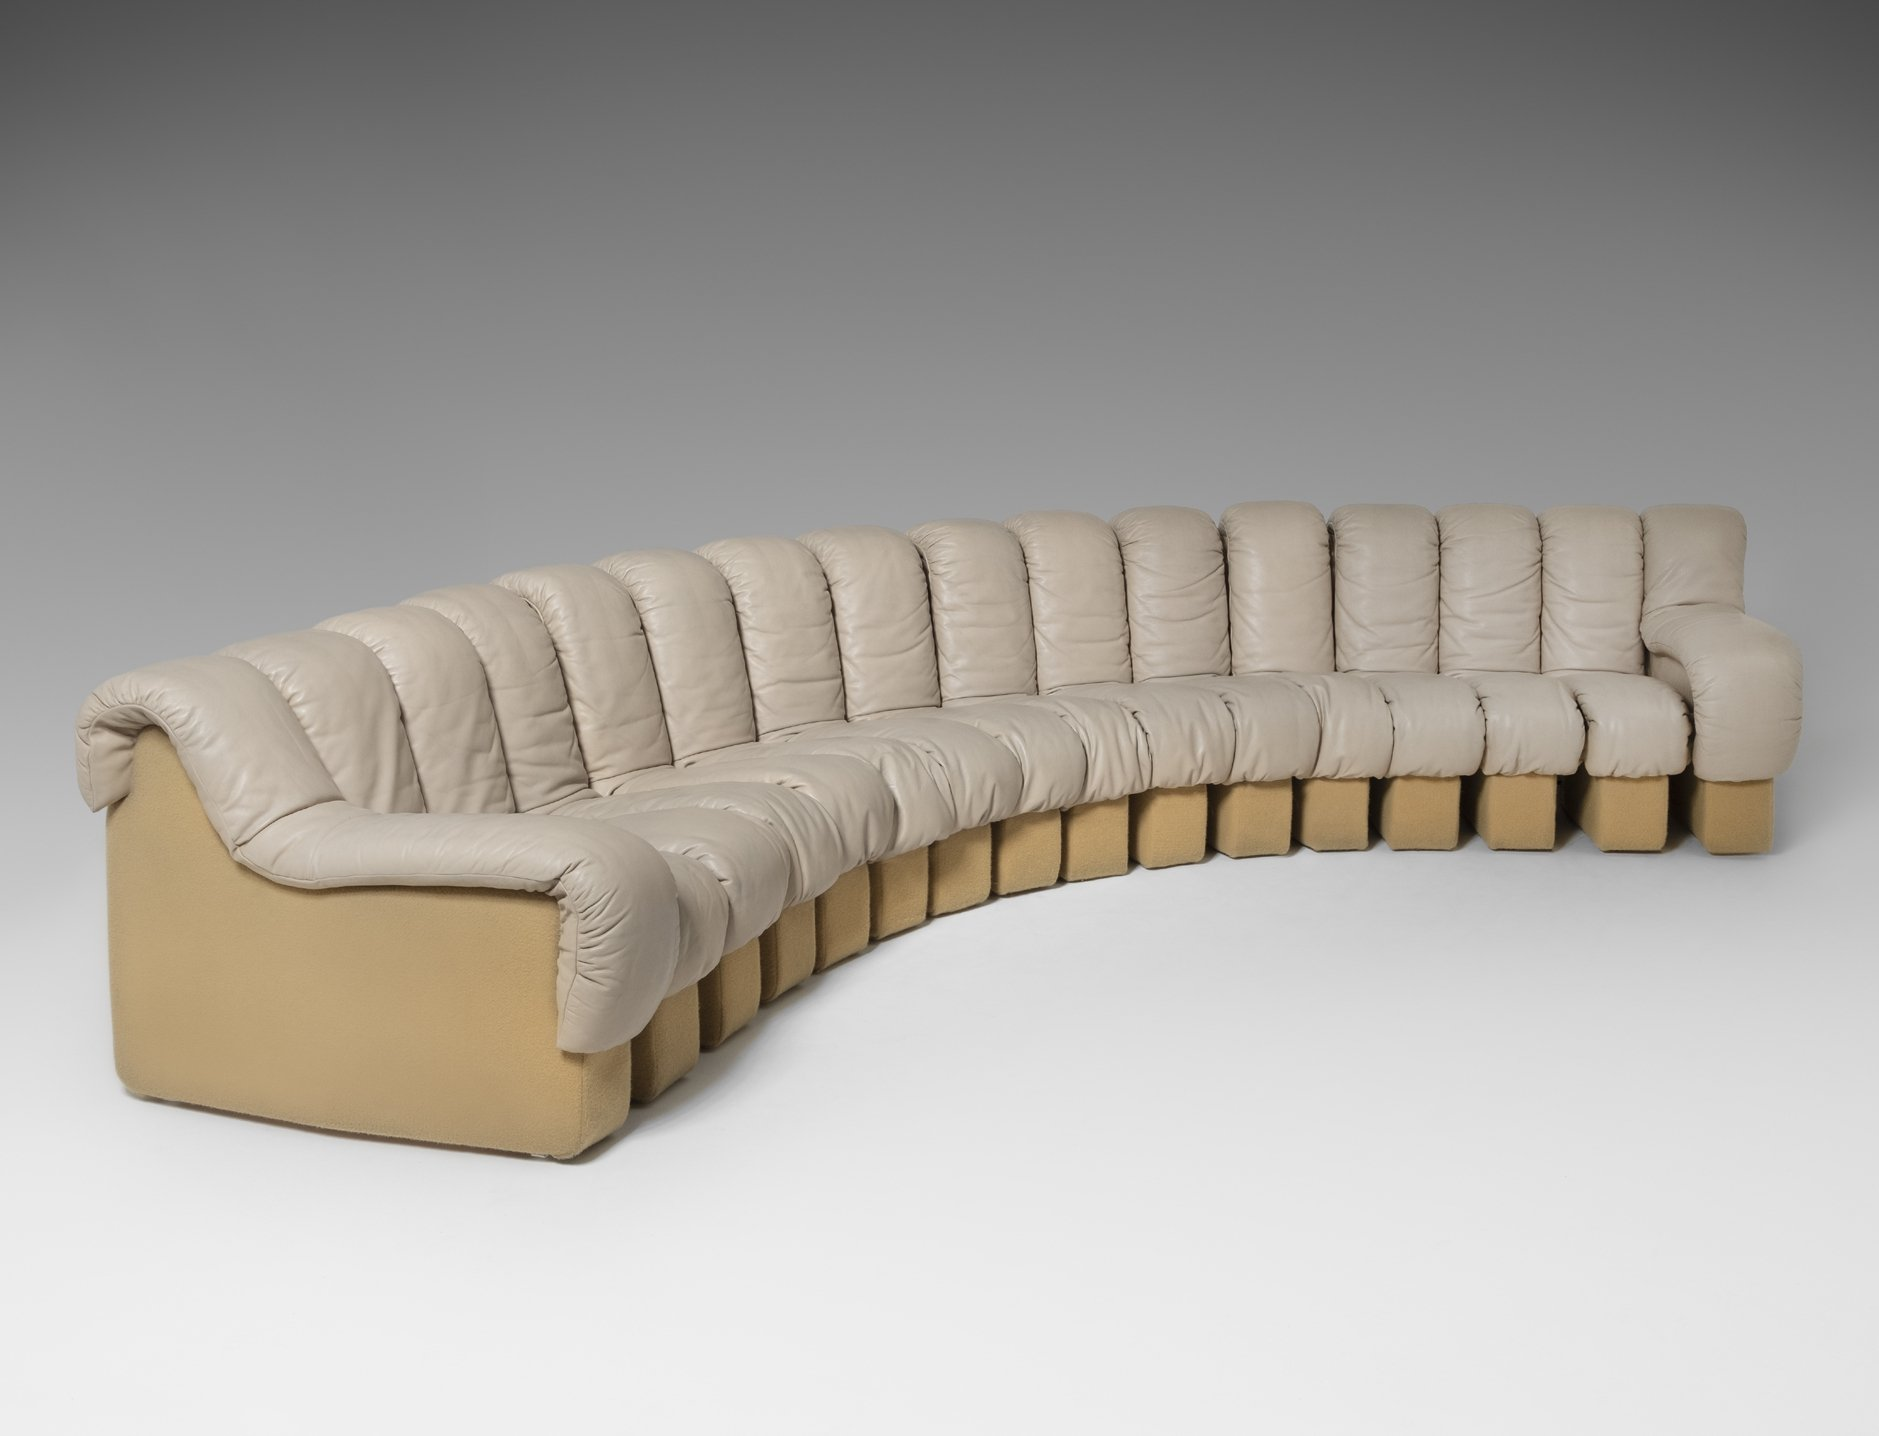 Picture of: De Sede Ds 600 Non Stop Sectional Sofa In Beige Leather 139142